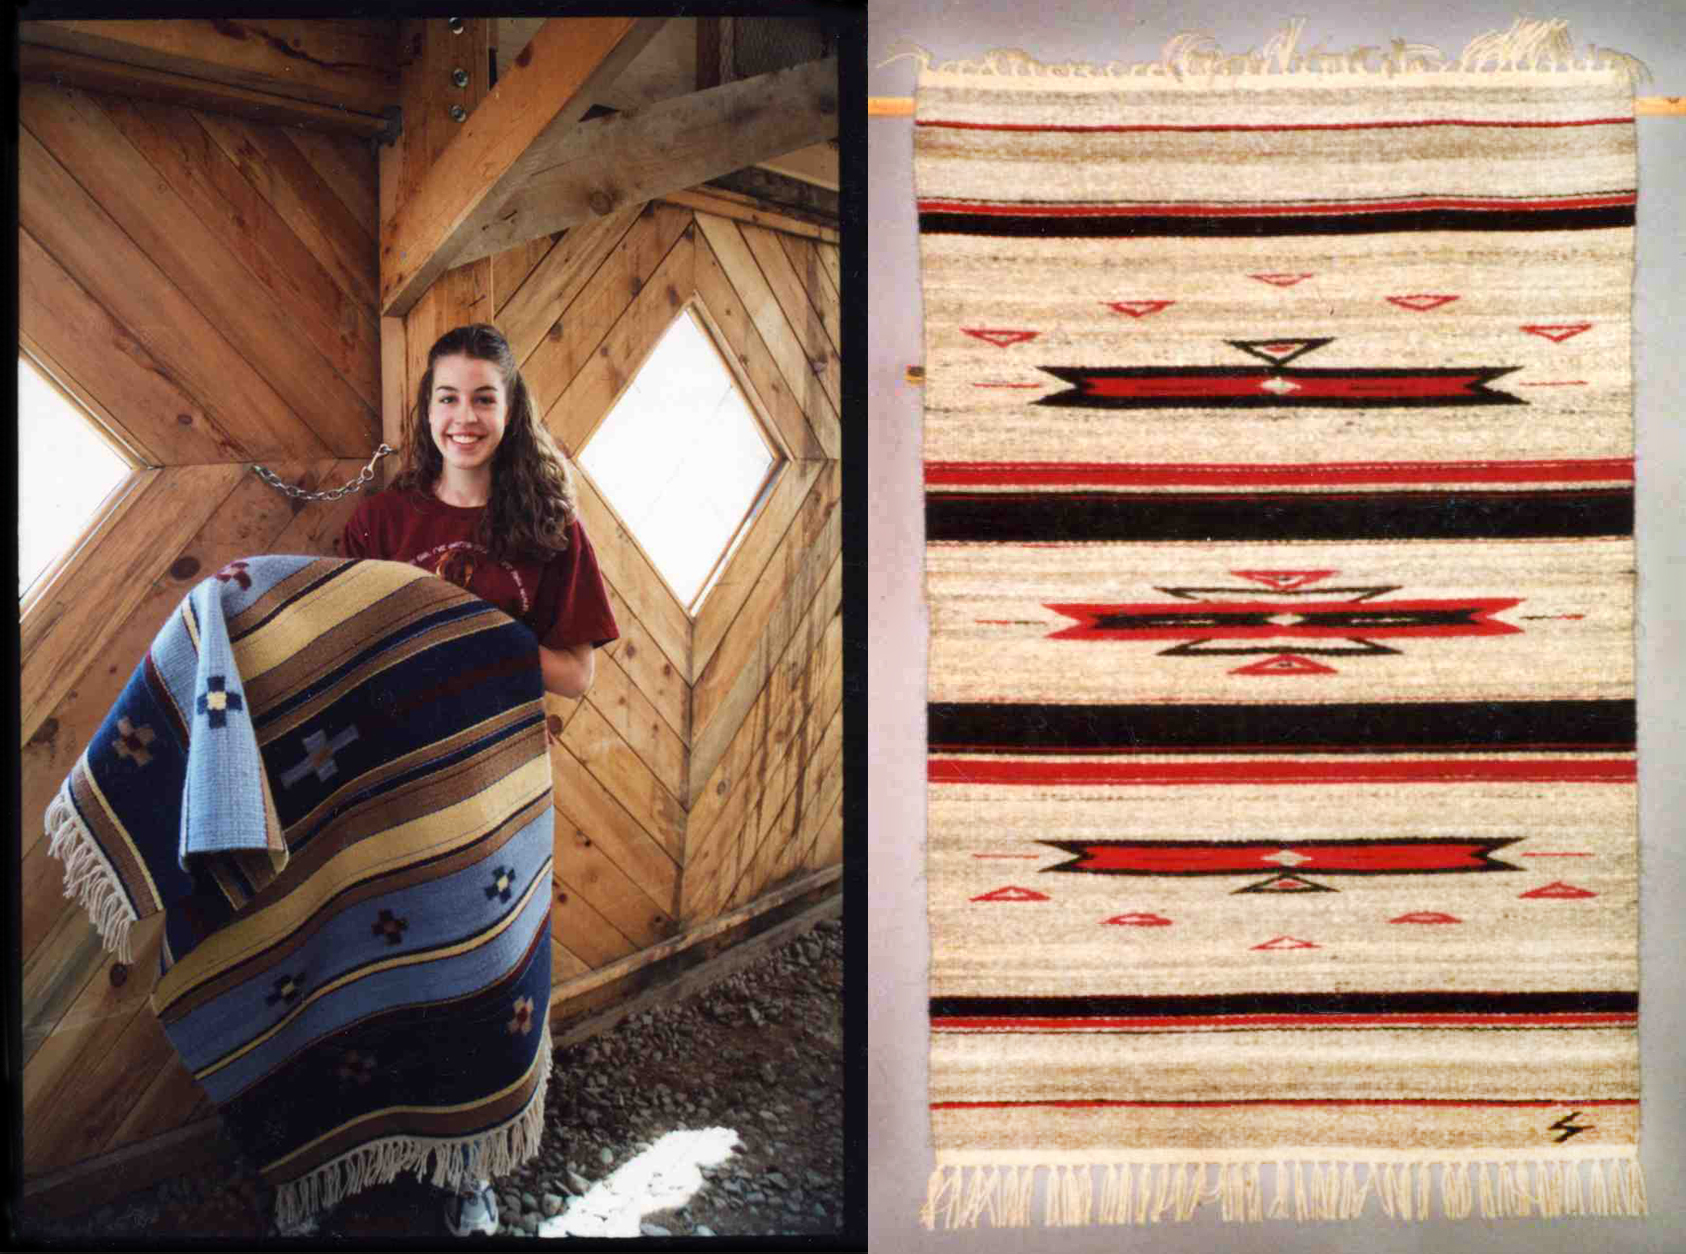 3′ x 5′ rug-weight wool blankets – just two of hundreds woven over a period of seven years. Left: Blue and tan crosses in a palette inspired by the New Mexico landscape, handwoven with Rambouillet yarn. Right: Naturally dyed Cochineal red with natural black and gray Navajo Churro yarn